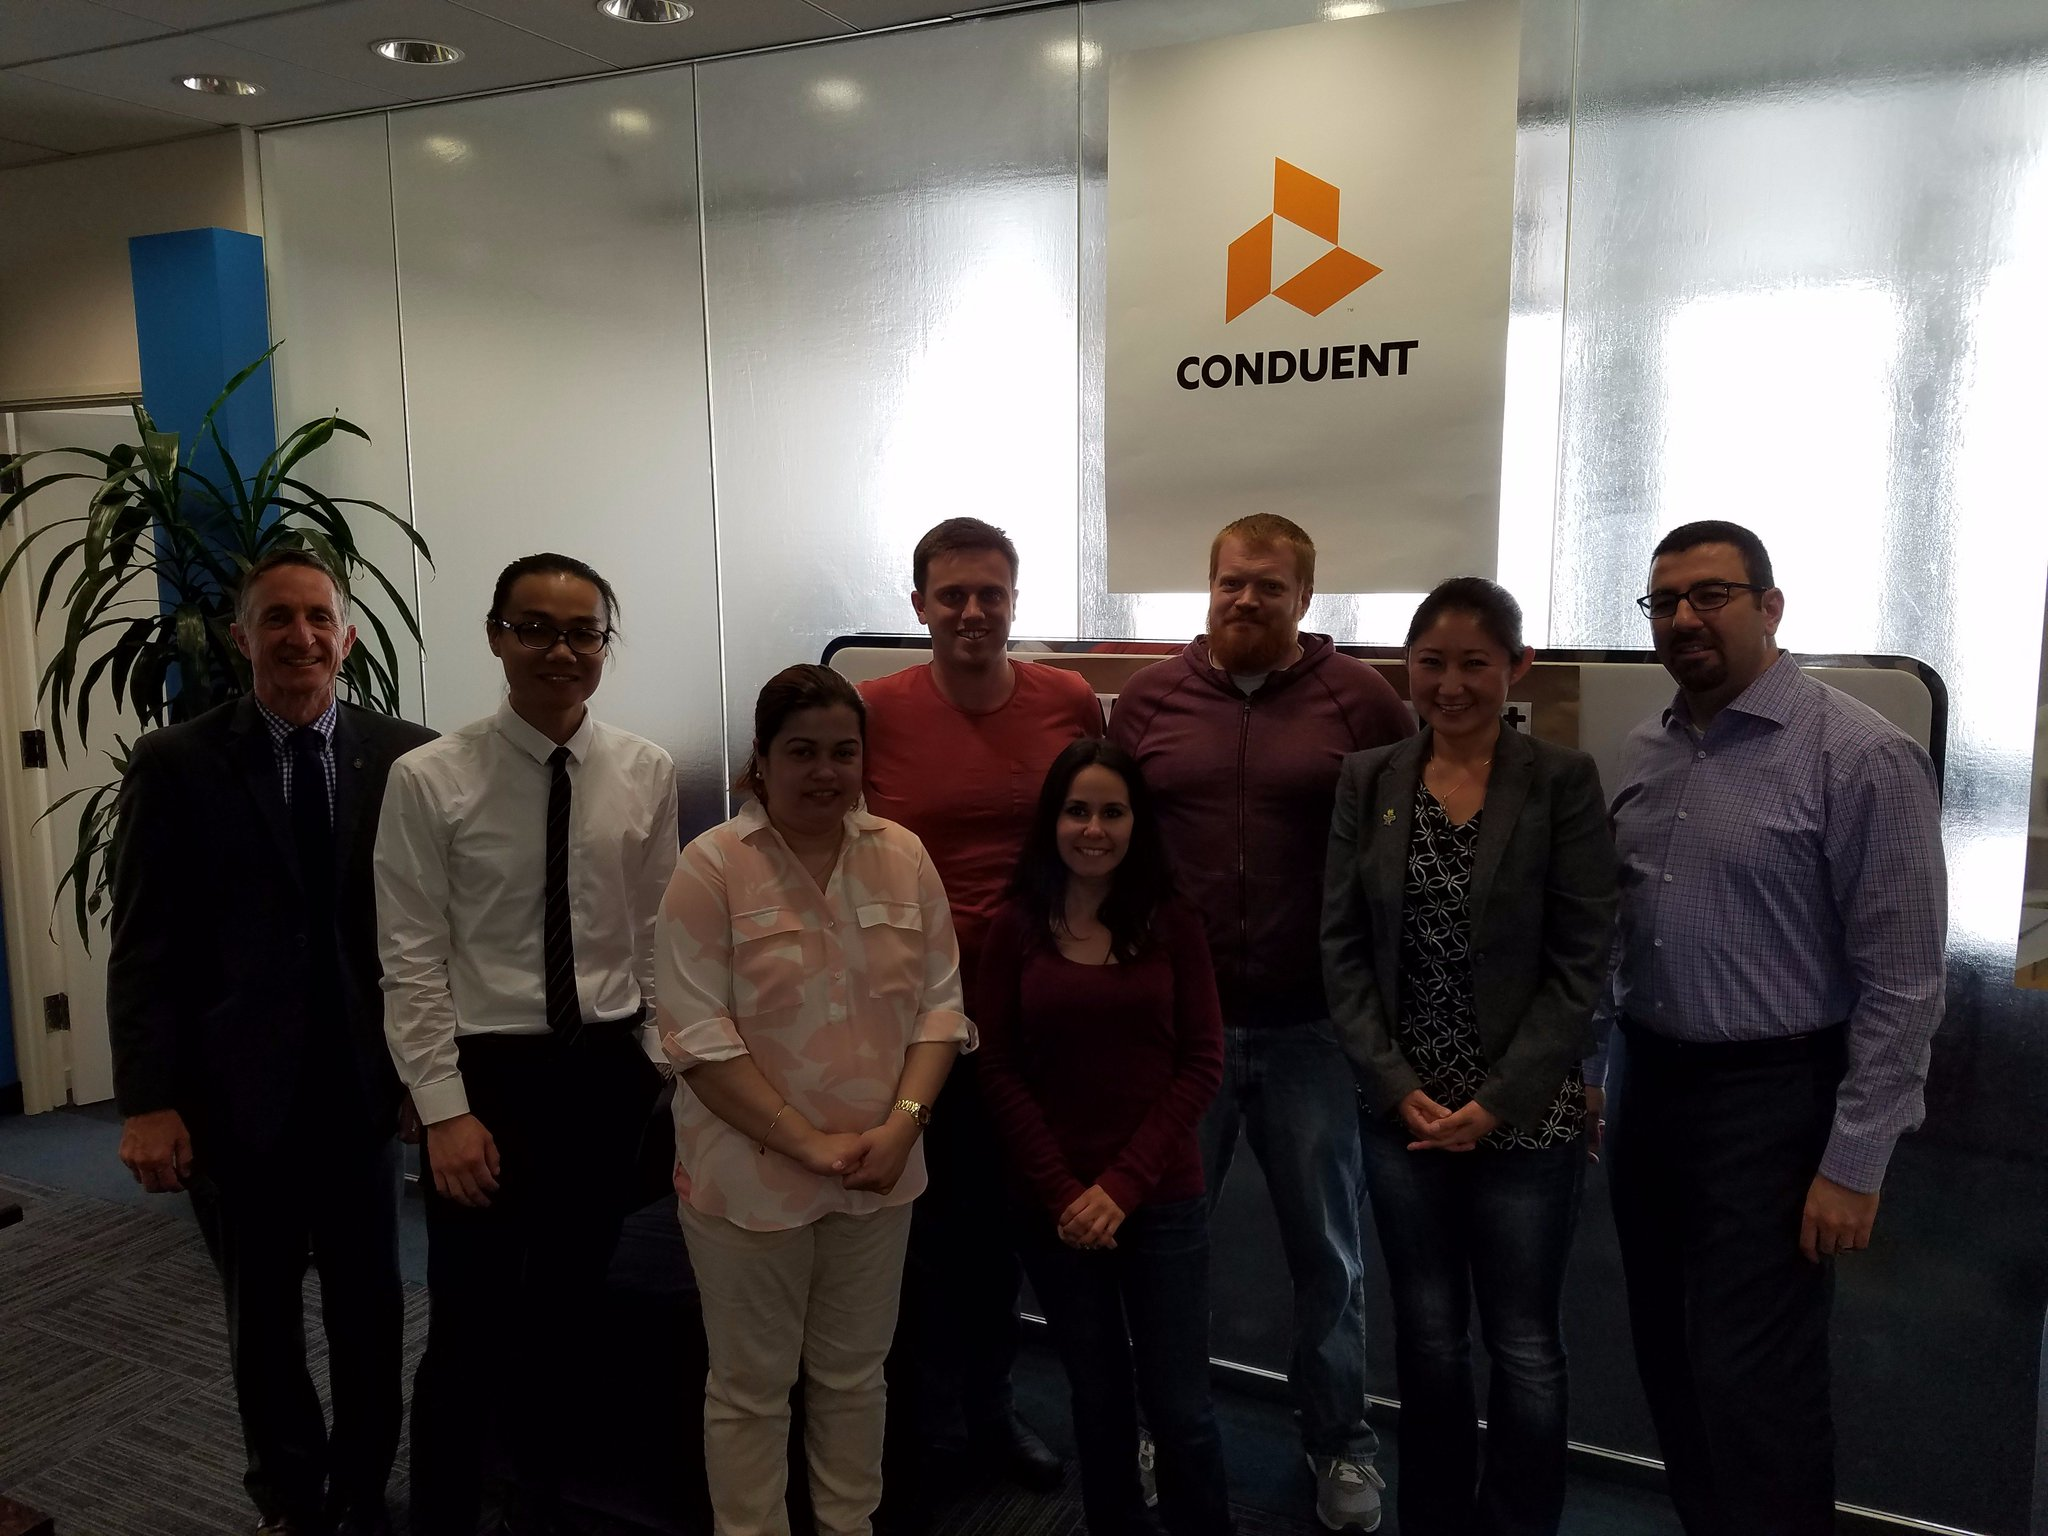 For more perspective into the private sector, students also hit up @Conduent's Los Angeles office this morning! https://t.co/shVsRWRZJi